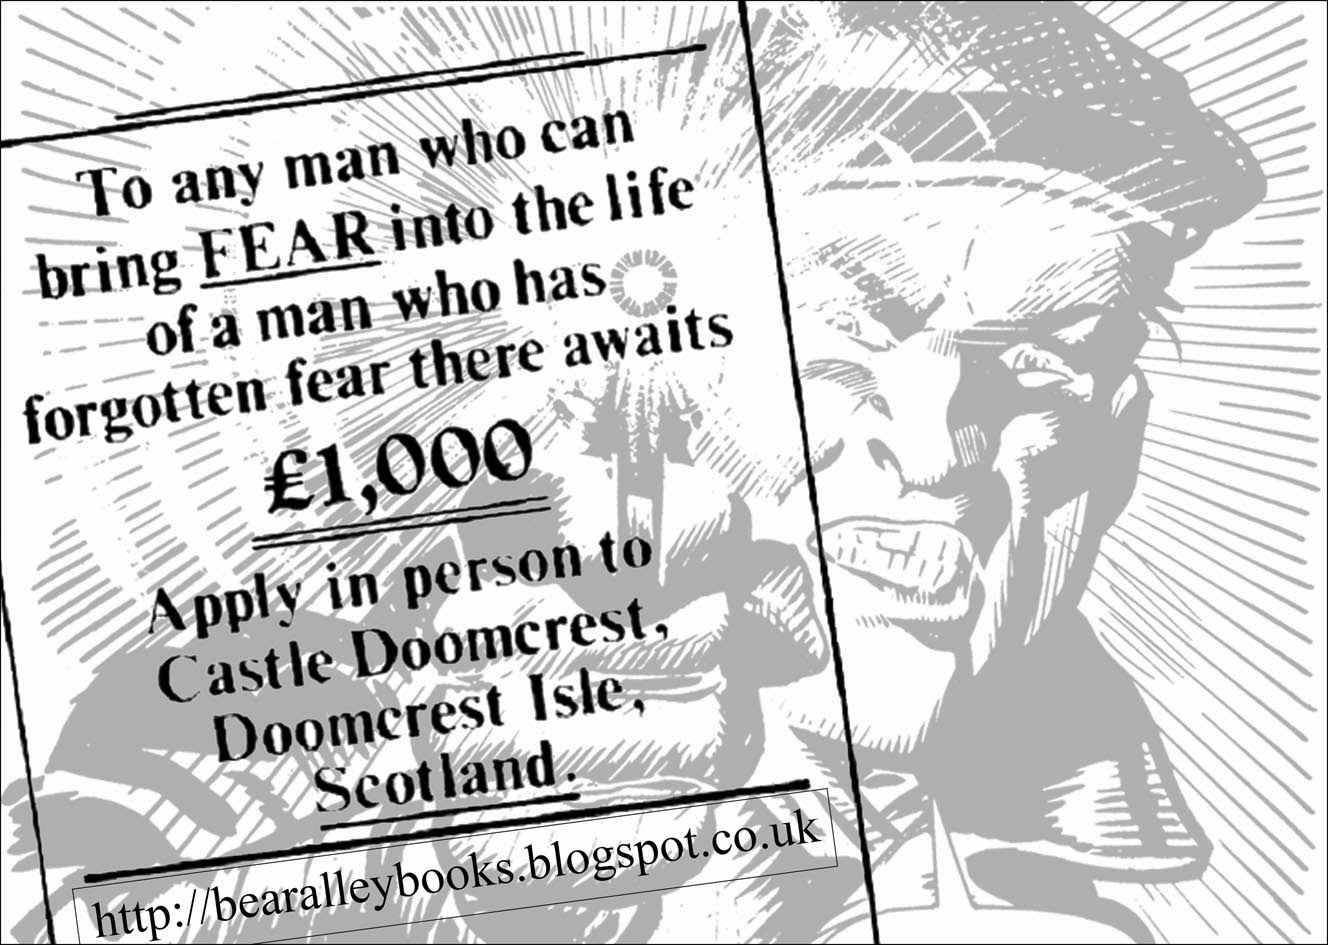 http://bearalleybooks.blogspot.co.uk/2014/01/the-man-who-searched-for-fear.html